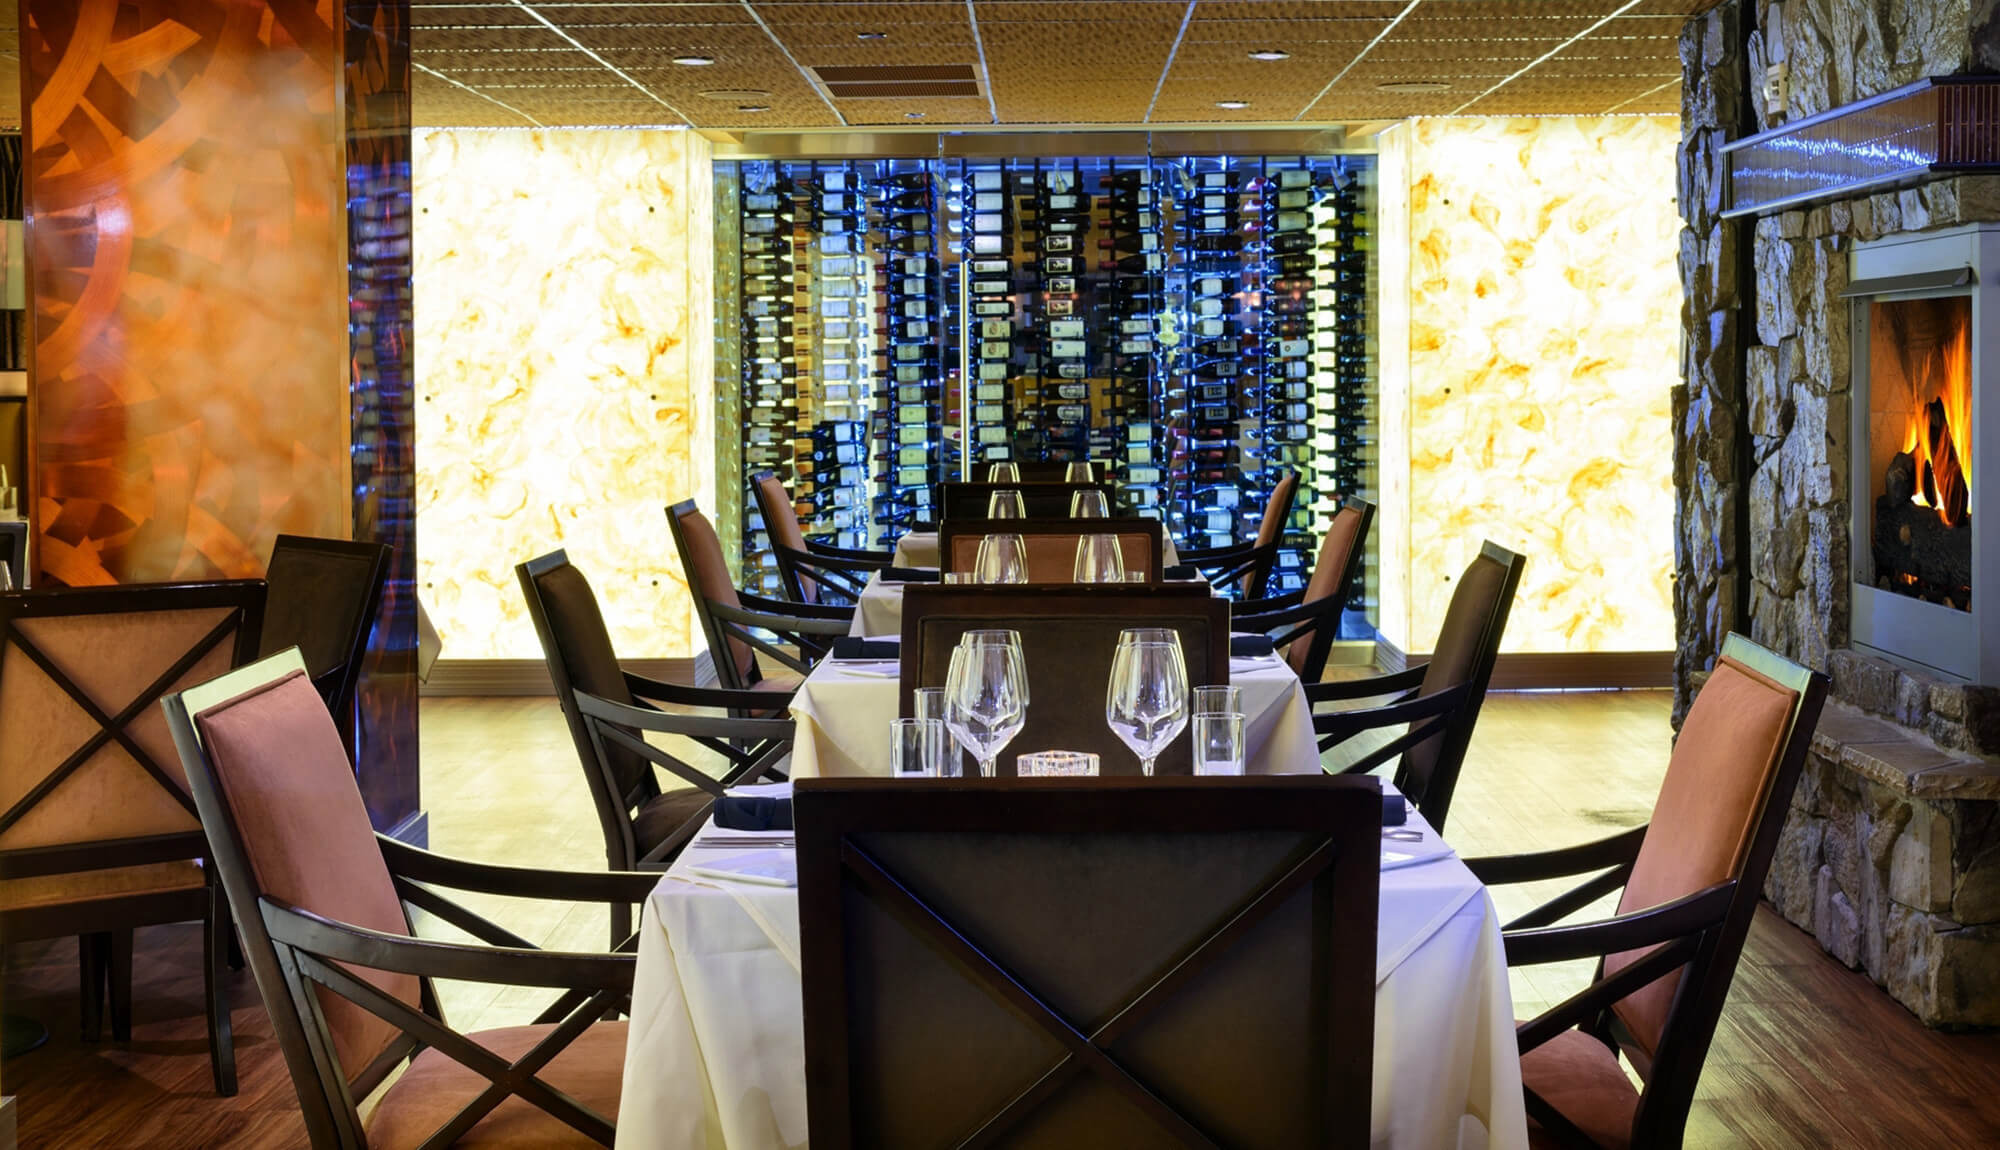 Upscale steakhouse elegantly decorated with wine rack in background | Westgate Park City Resort & Spa